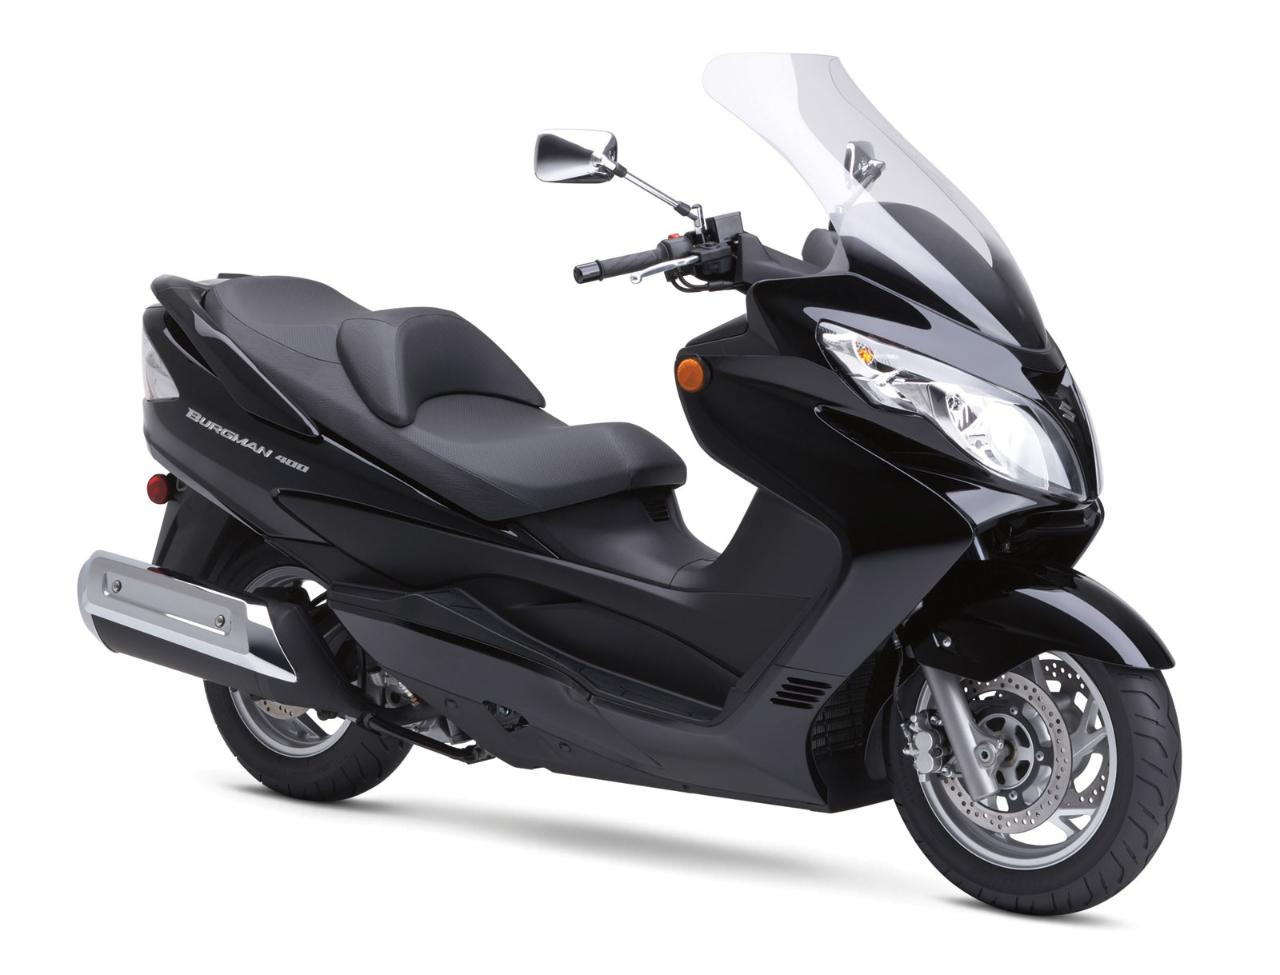 Suzuki Burgman 400cc Scooter Rental-Motorcycle License Required